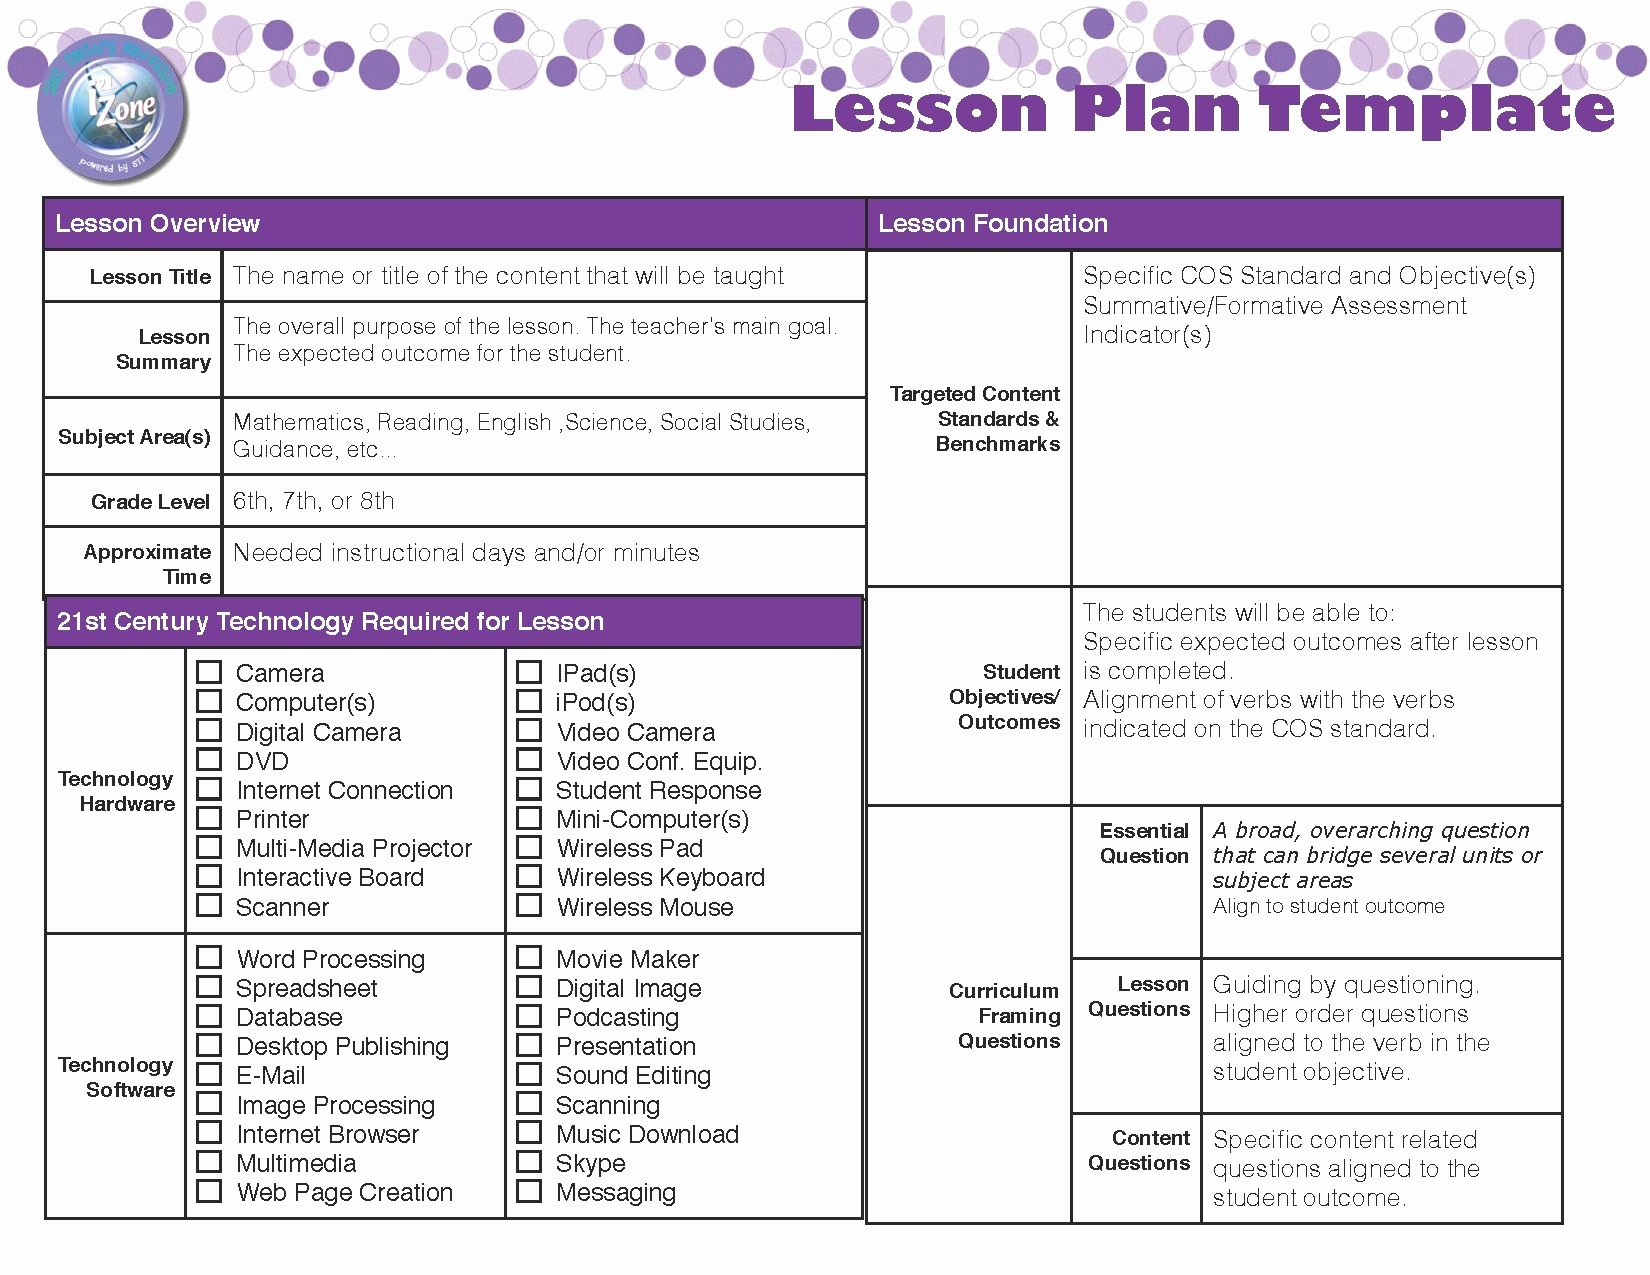 Lesson Plan Template for Teachers Luxury Lesson Plan Template